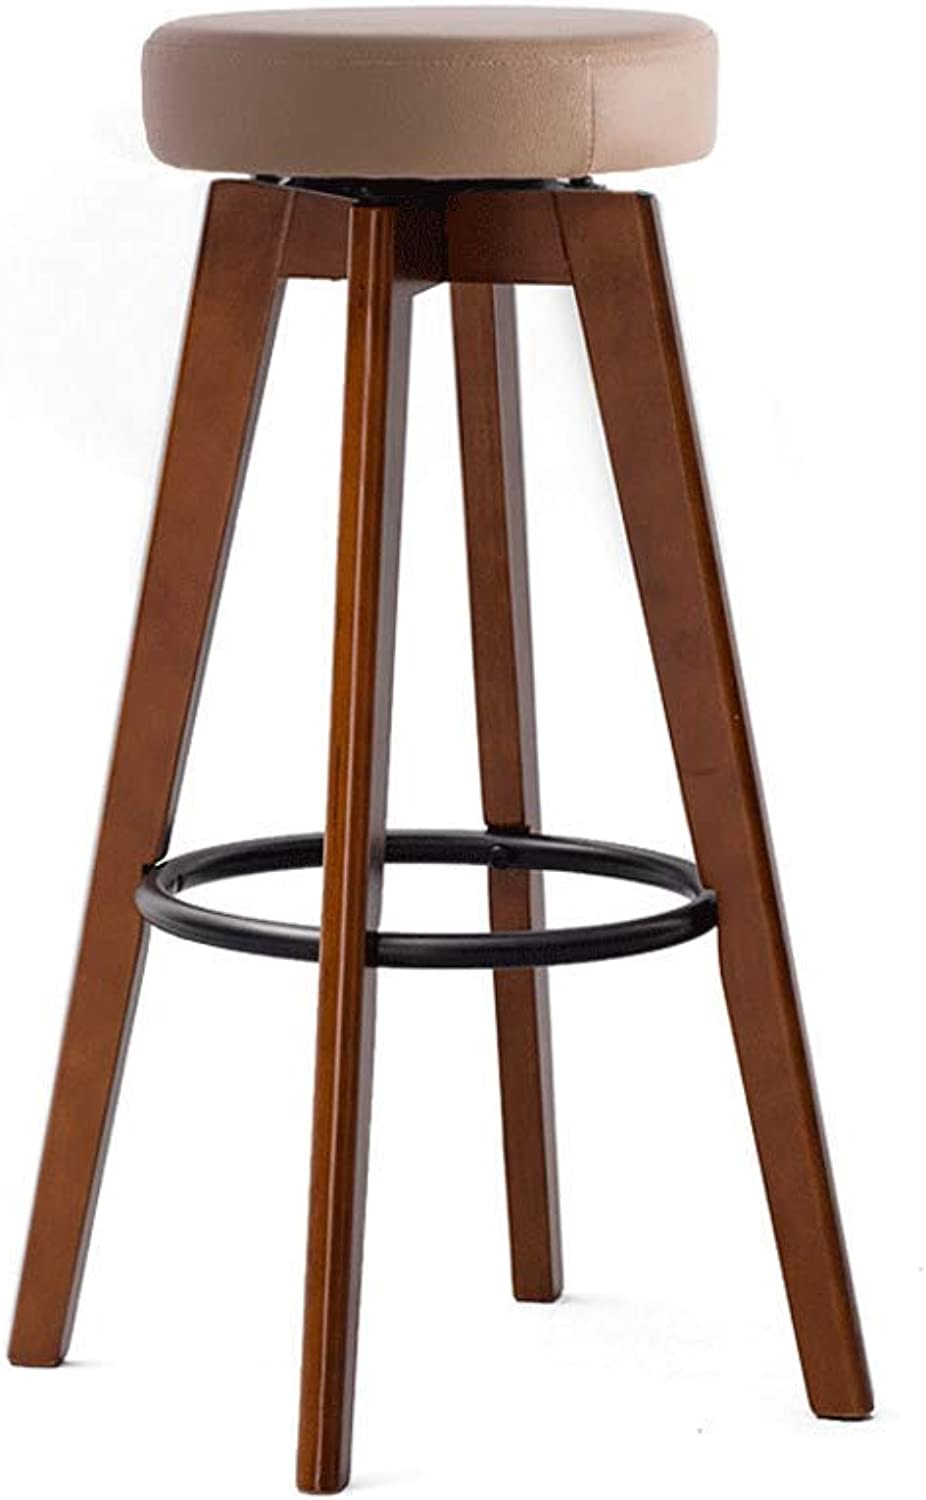 Bar Chair Bar Stool High Stool Home Solid Wood Bar Stool Modern Minimalist redating Creative Chair Multi-color (color   Brown Wood Brown, Size   74-Iron Ring)